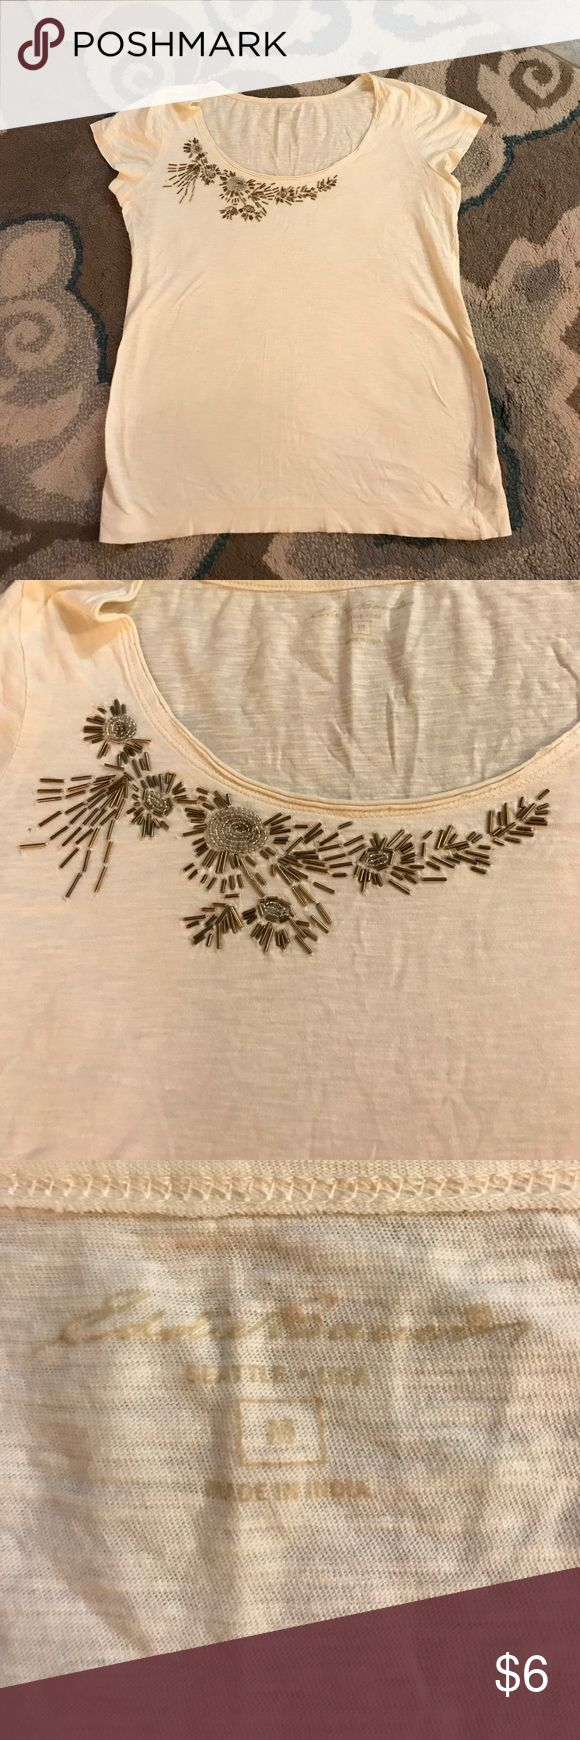 Beaded Woman's t shirt size Large His is a cream colored woman's tee shirt blouse size medium. It has a small beaded design . A few beads do look to be missing, but it is unnoticeable. The brand is Eddie Bauer . Eddie Bauer Tops Tees - Short Sleeve